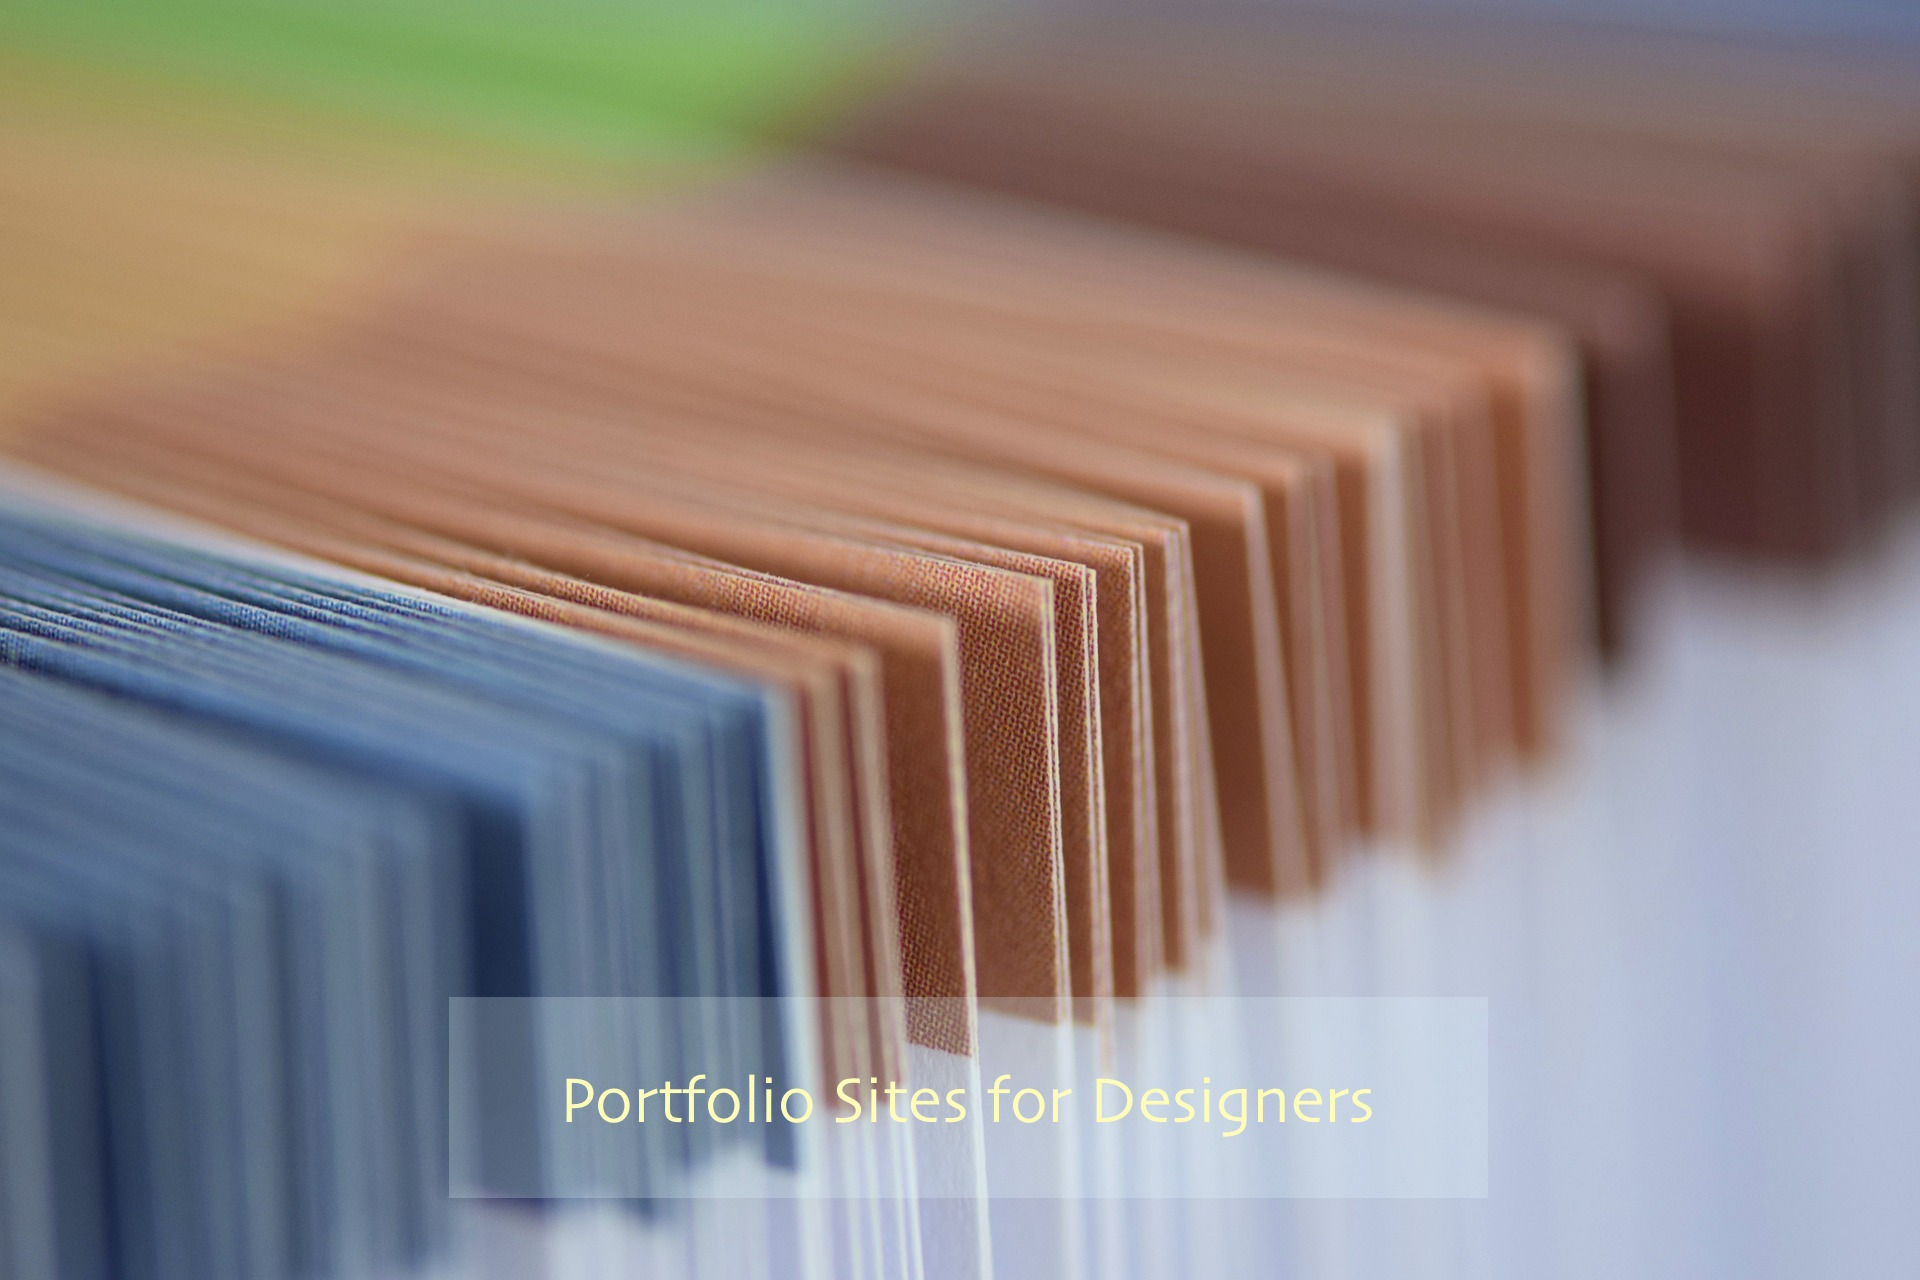 Sites Where You Can Share Your Portfolio as a Designer